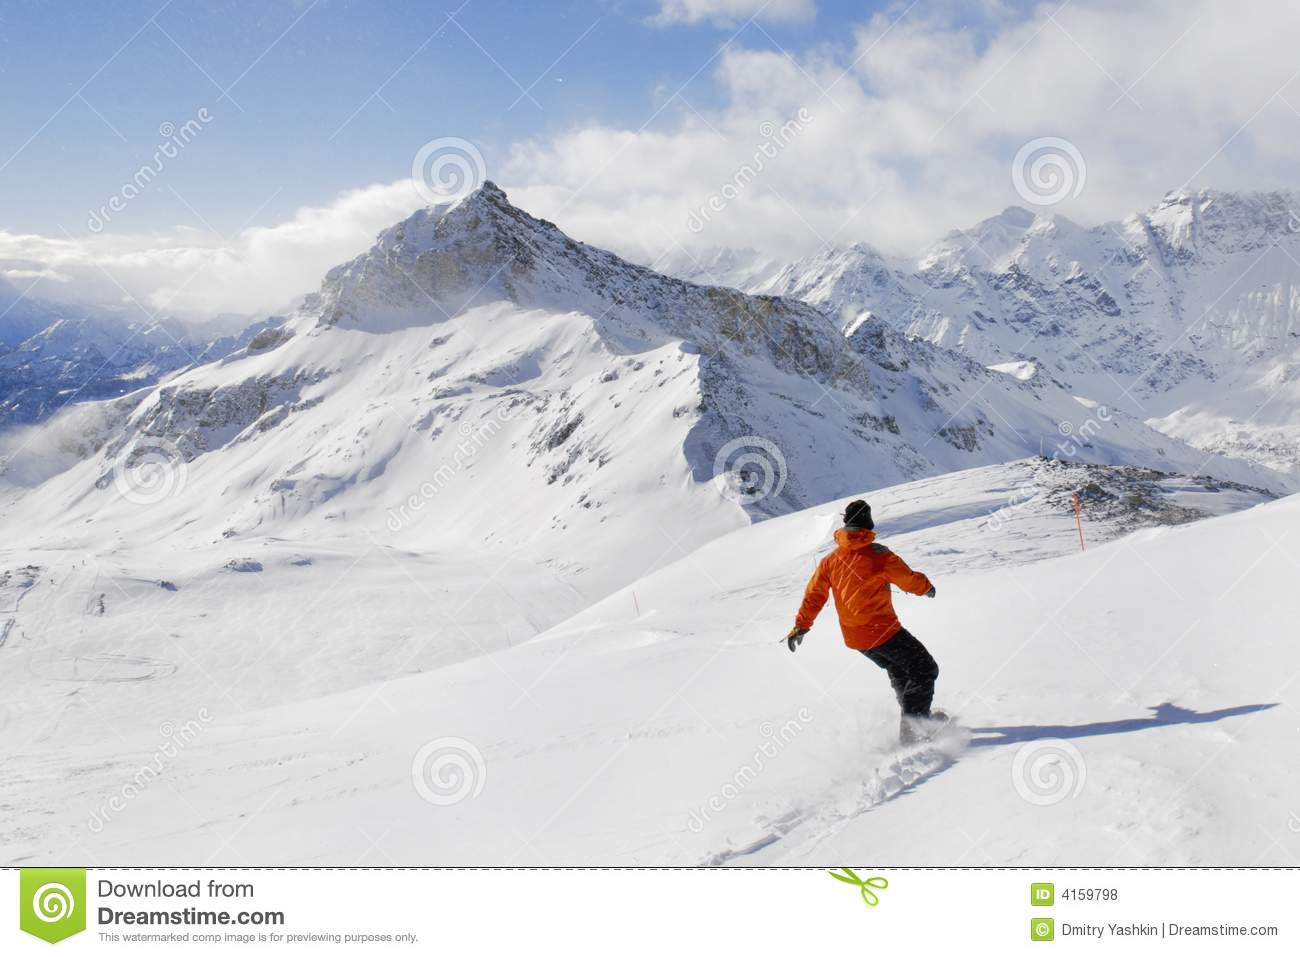 Snowboarder on a mountain background